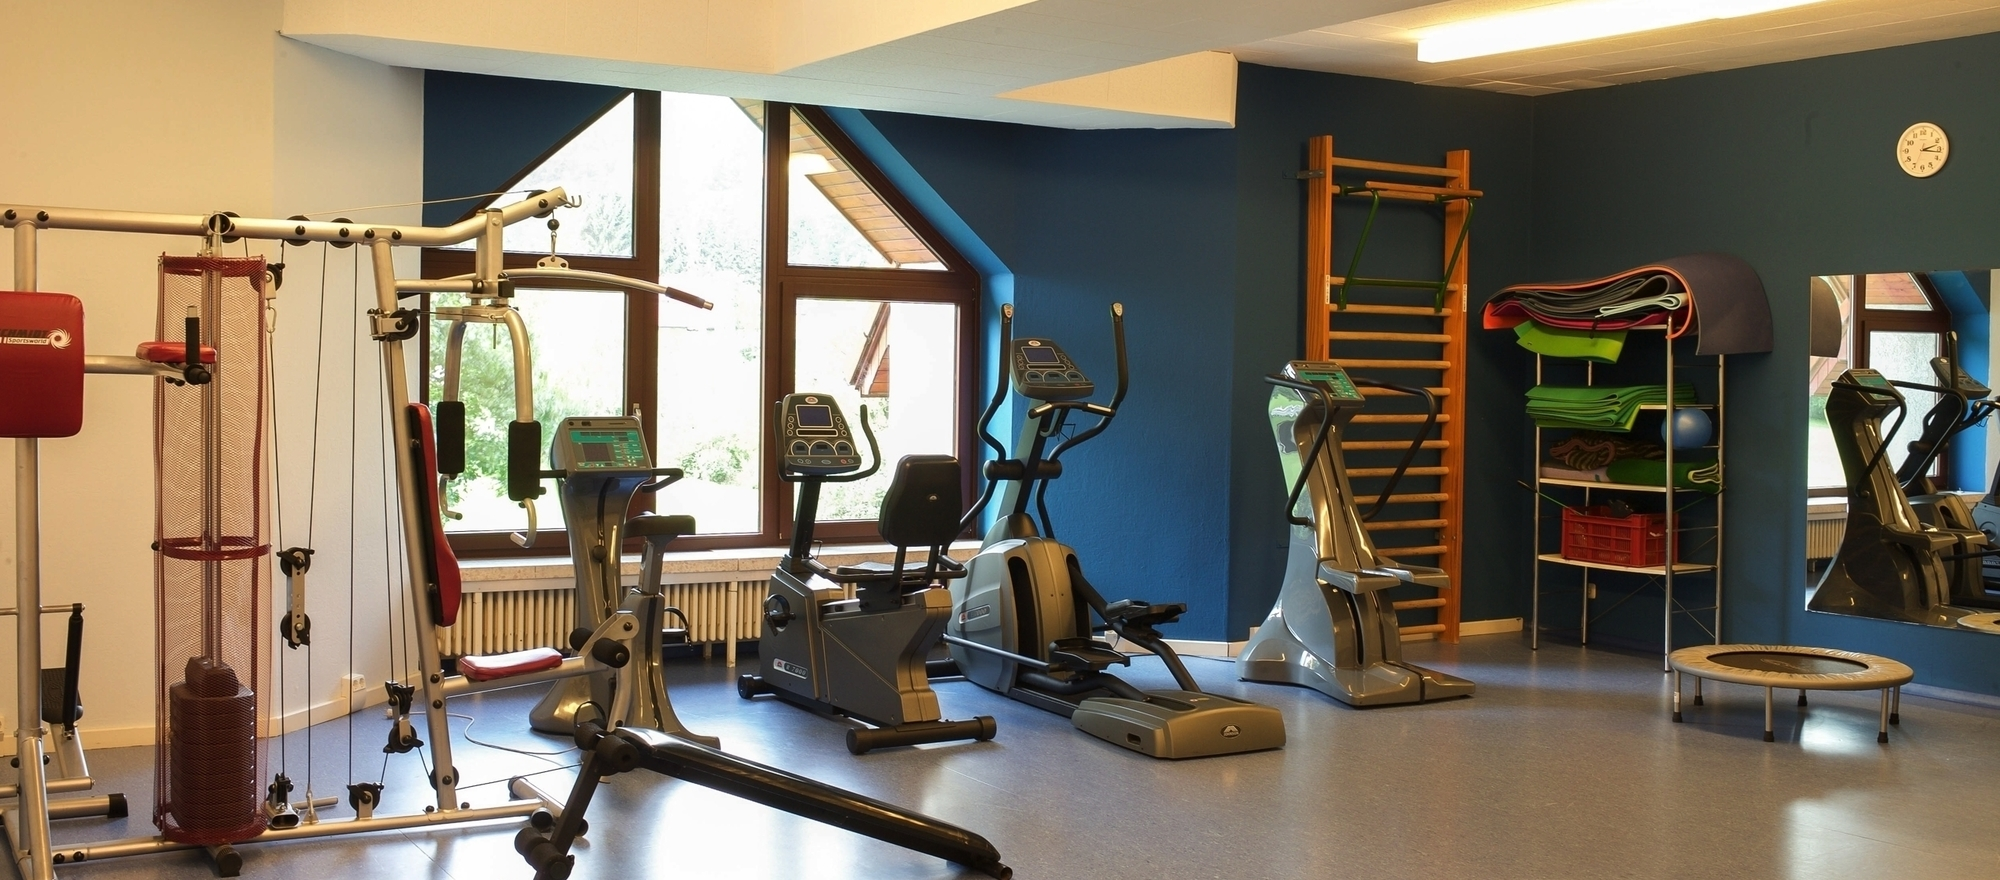 Fitness room at the 4-star hotel Ringhotel Waldhotel Baerenstein in Horn-Bad Meinberg